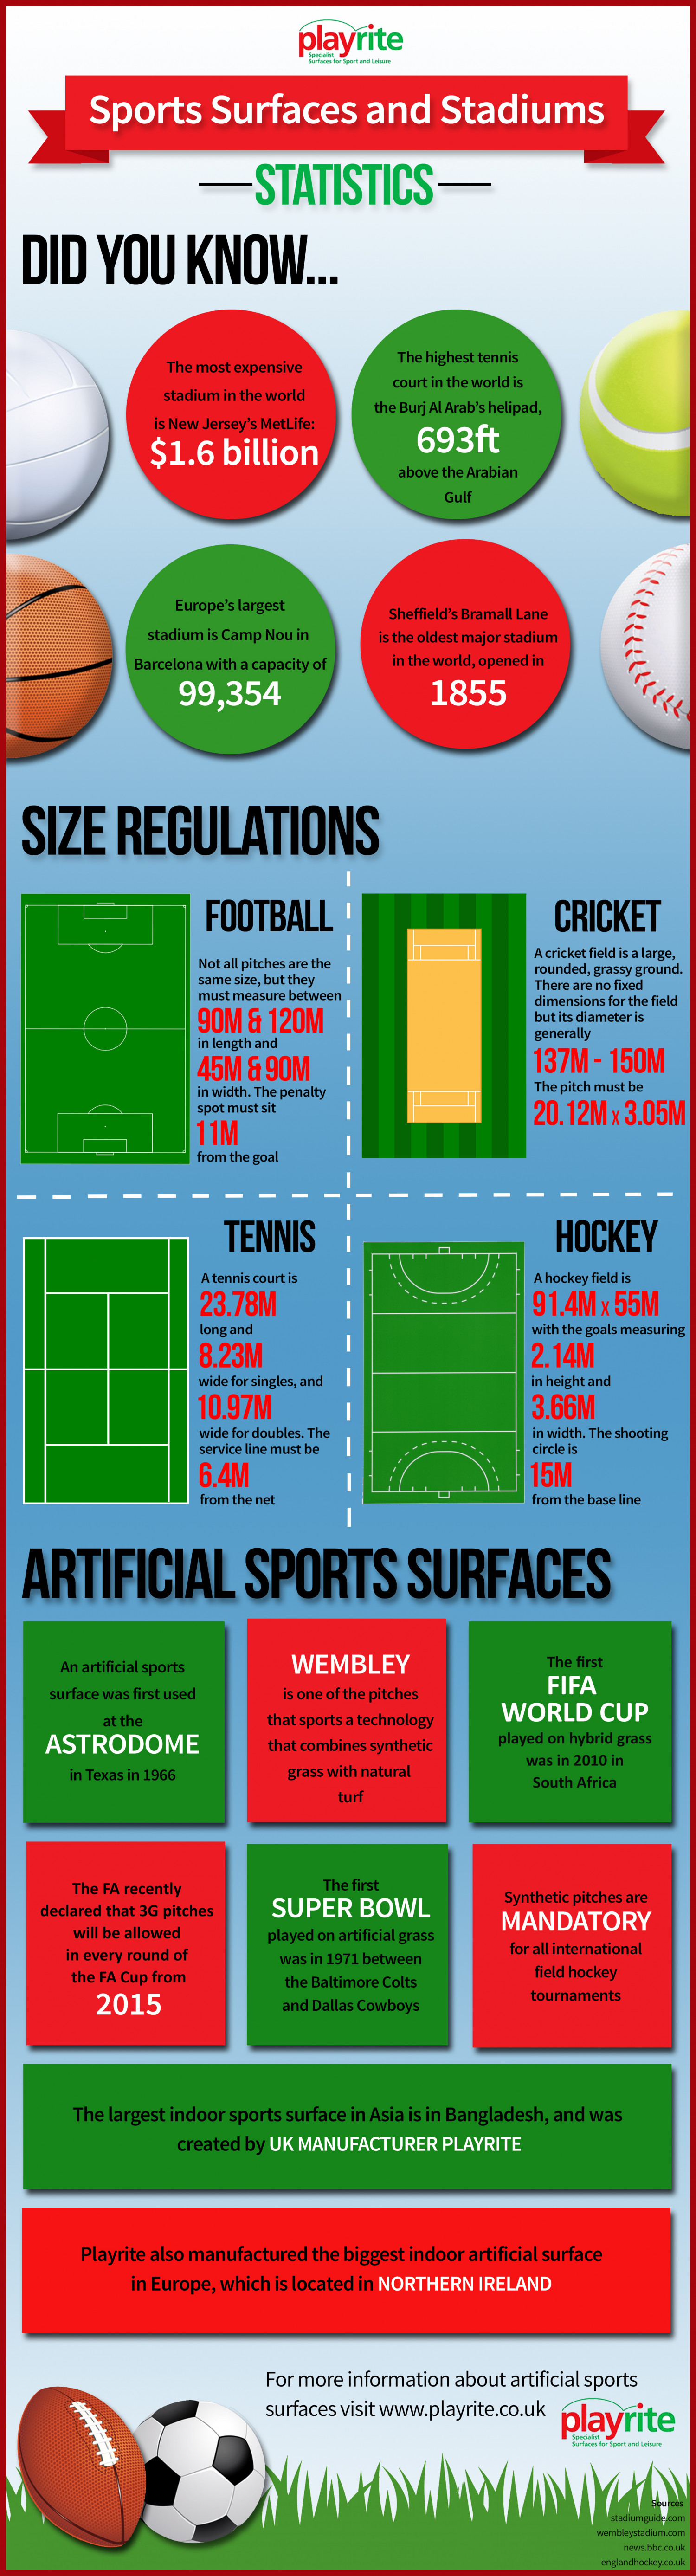 Sports Surfaces and Stadiums Statistics Infographic